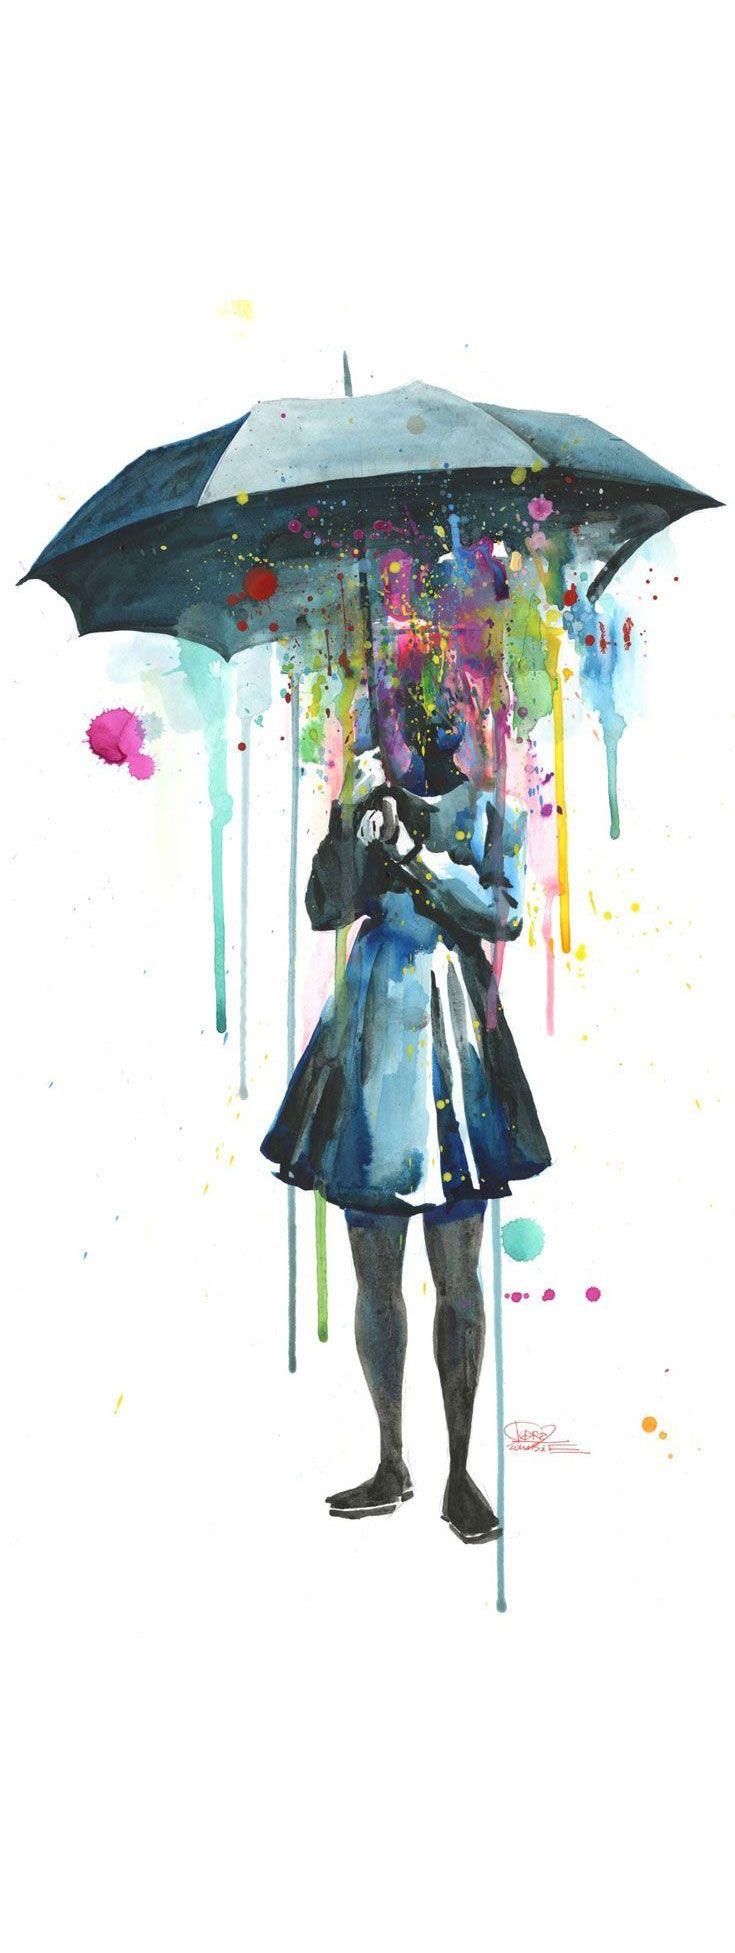 'Rainy' by Lora Zombie - Fine Art Prints available in a variety of formats at Eyes On Walls - http://www.eyesonwalls.com/collections/all/rainy?utm_source=pinterest&utm_medium=ads&utm_content=Rainy&utm_campaign=Lora%20Zombie